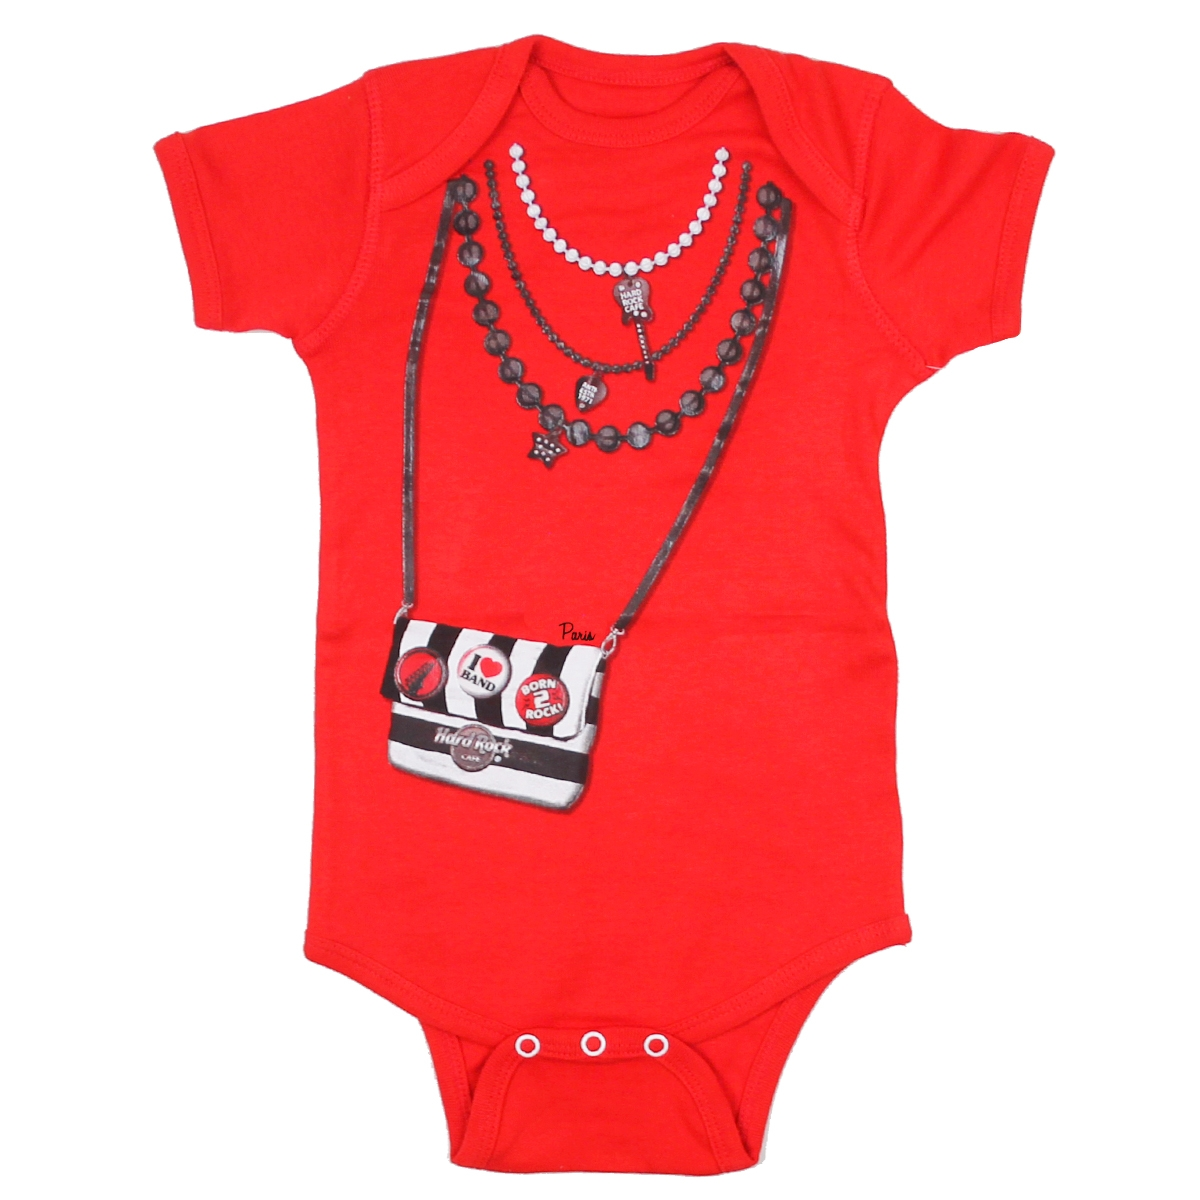 Girls Red Purse Onesie, Paris 0